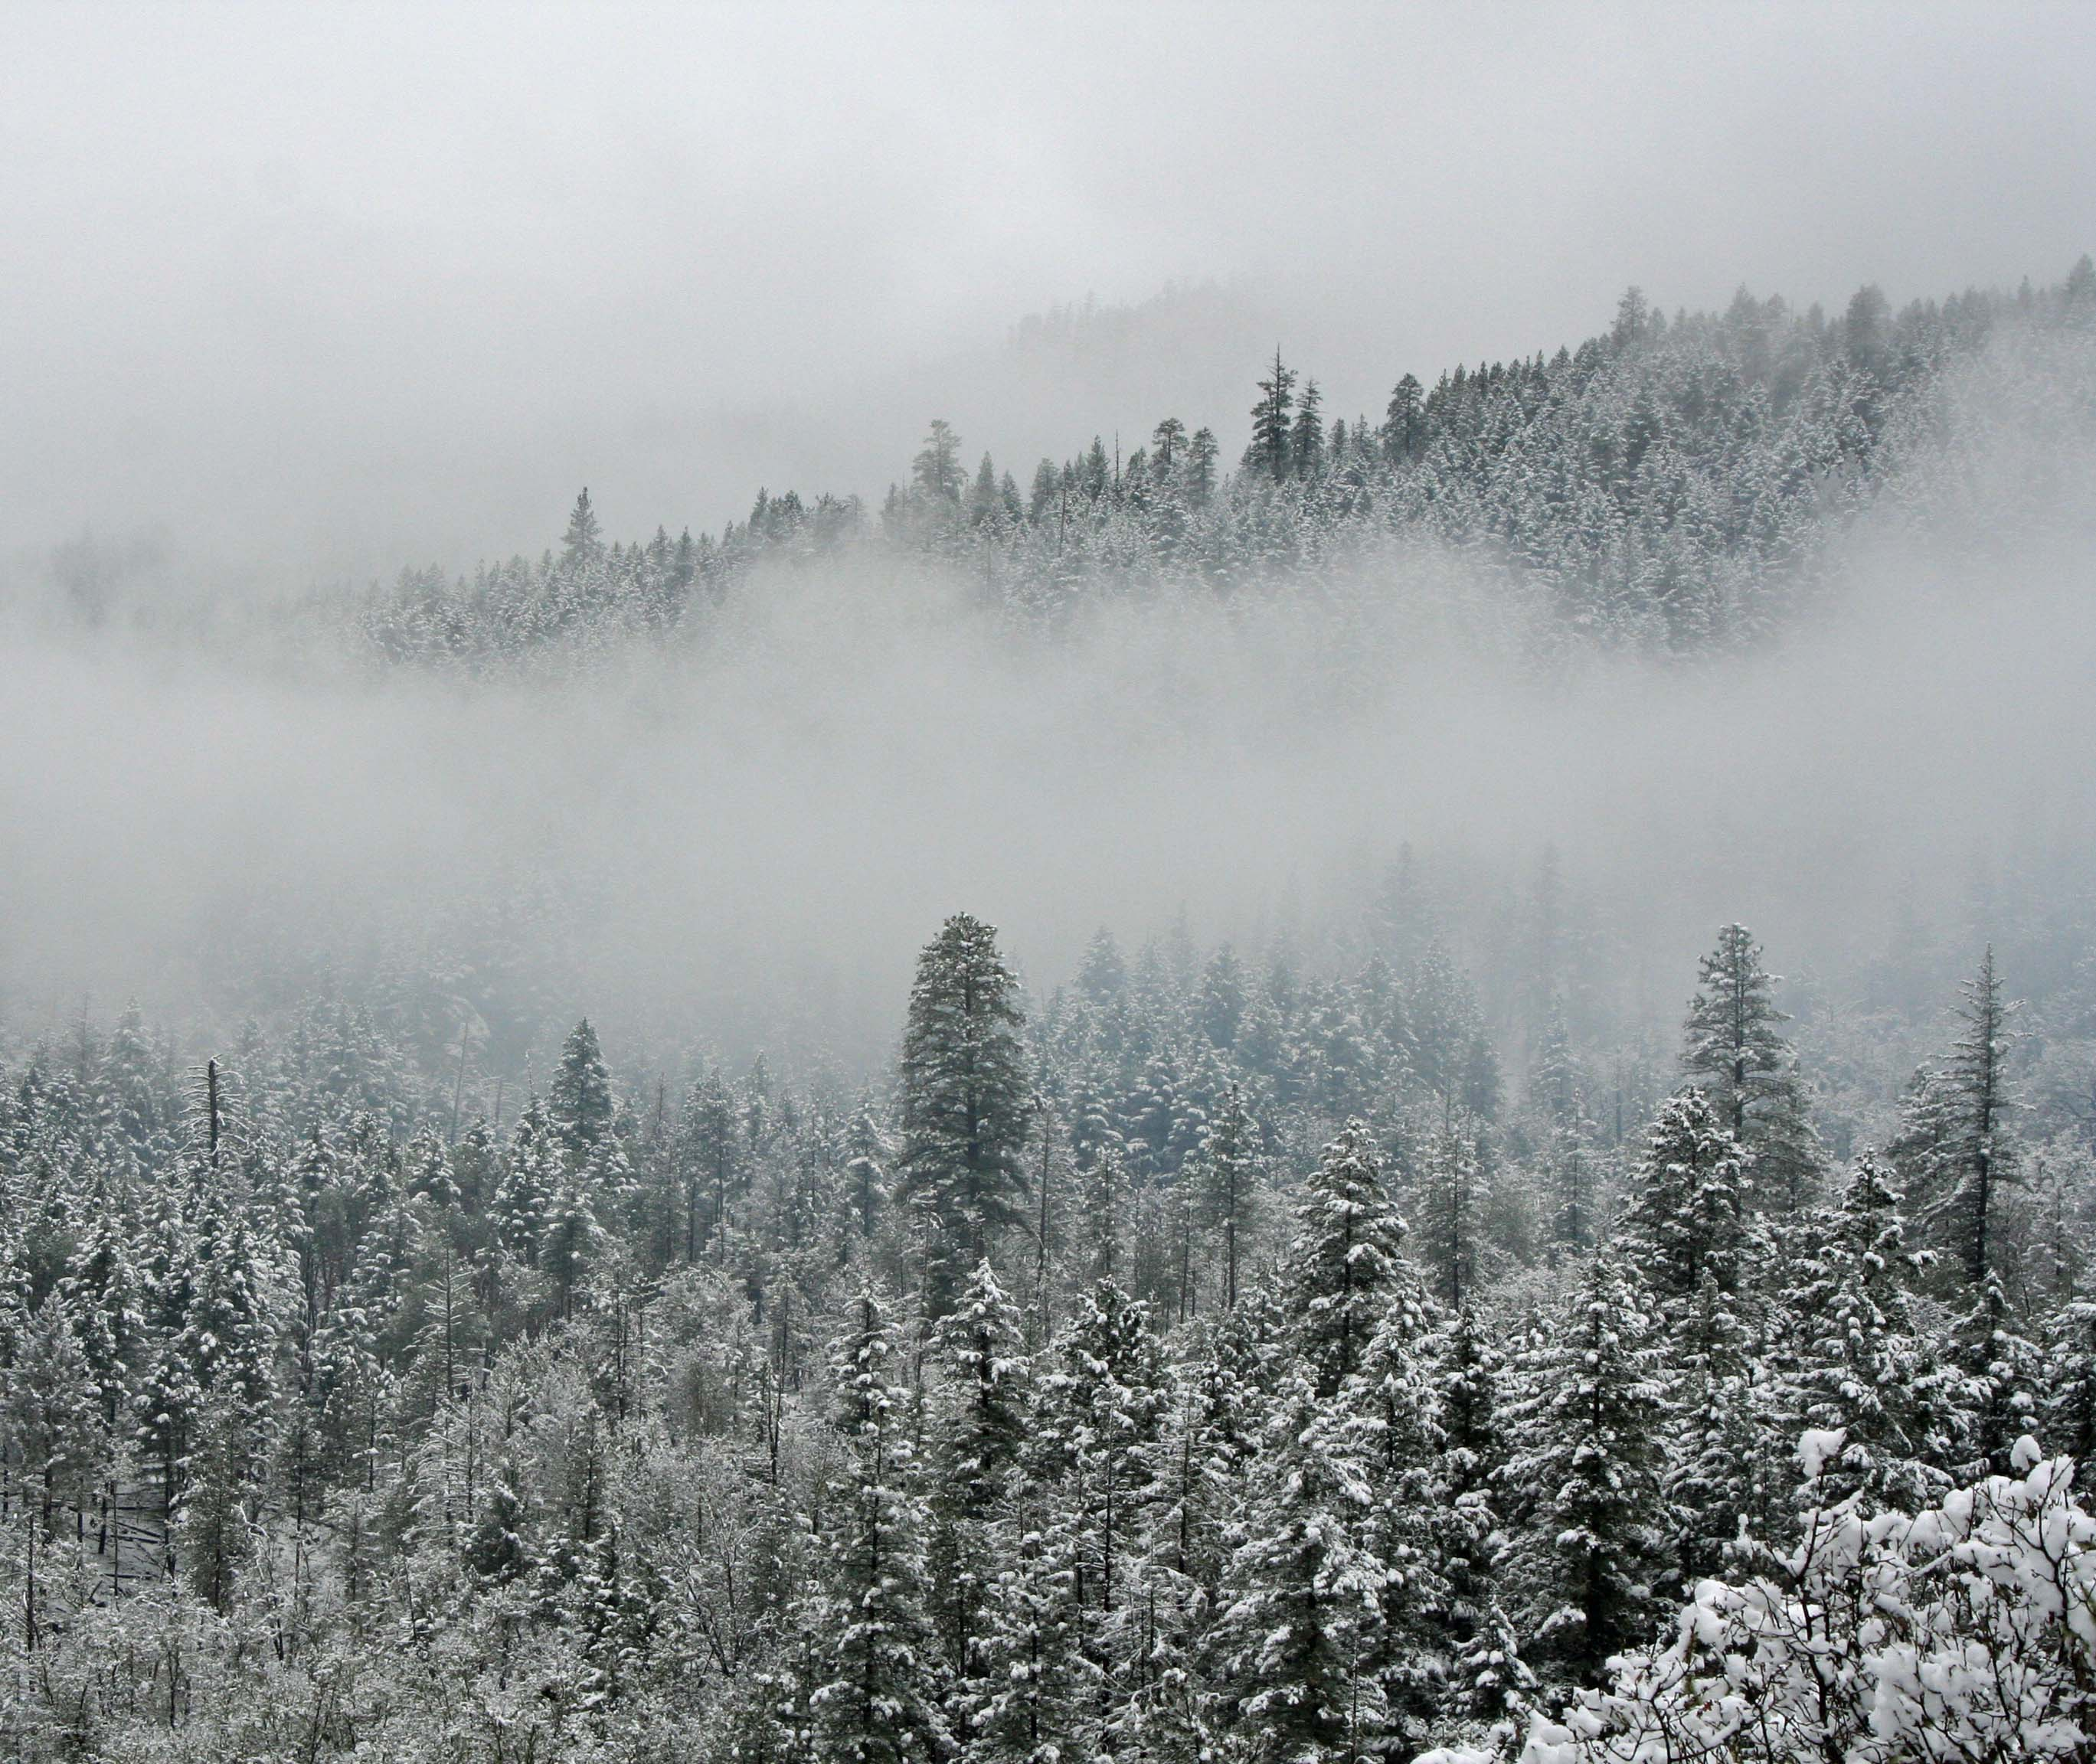 Southern Oregon forest covered with snow. Photo by Curtis Mekemson.